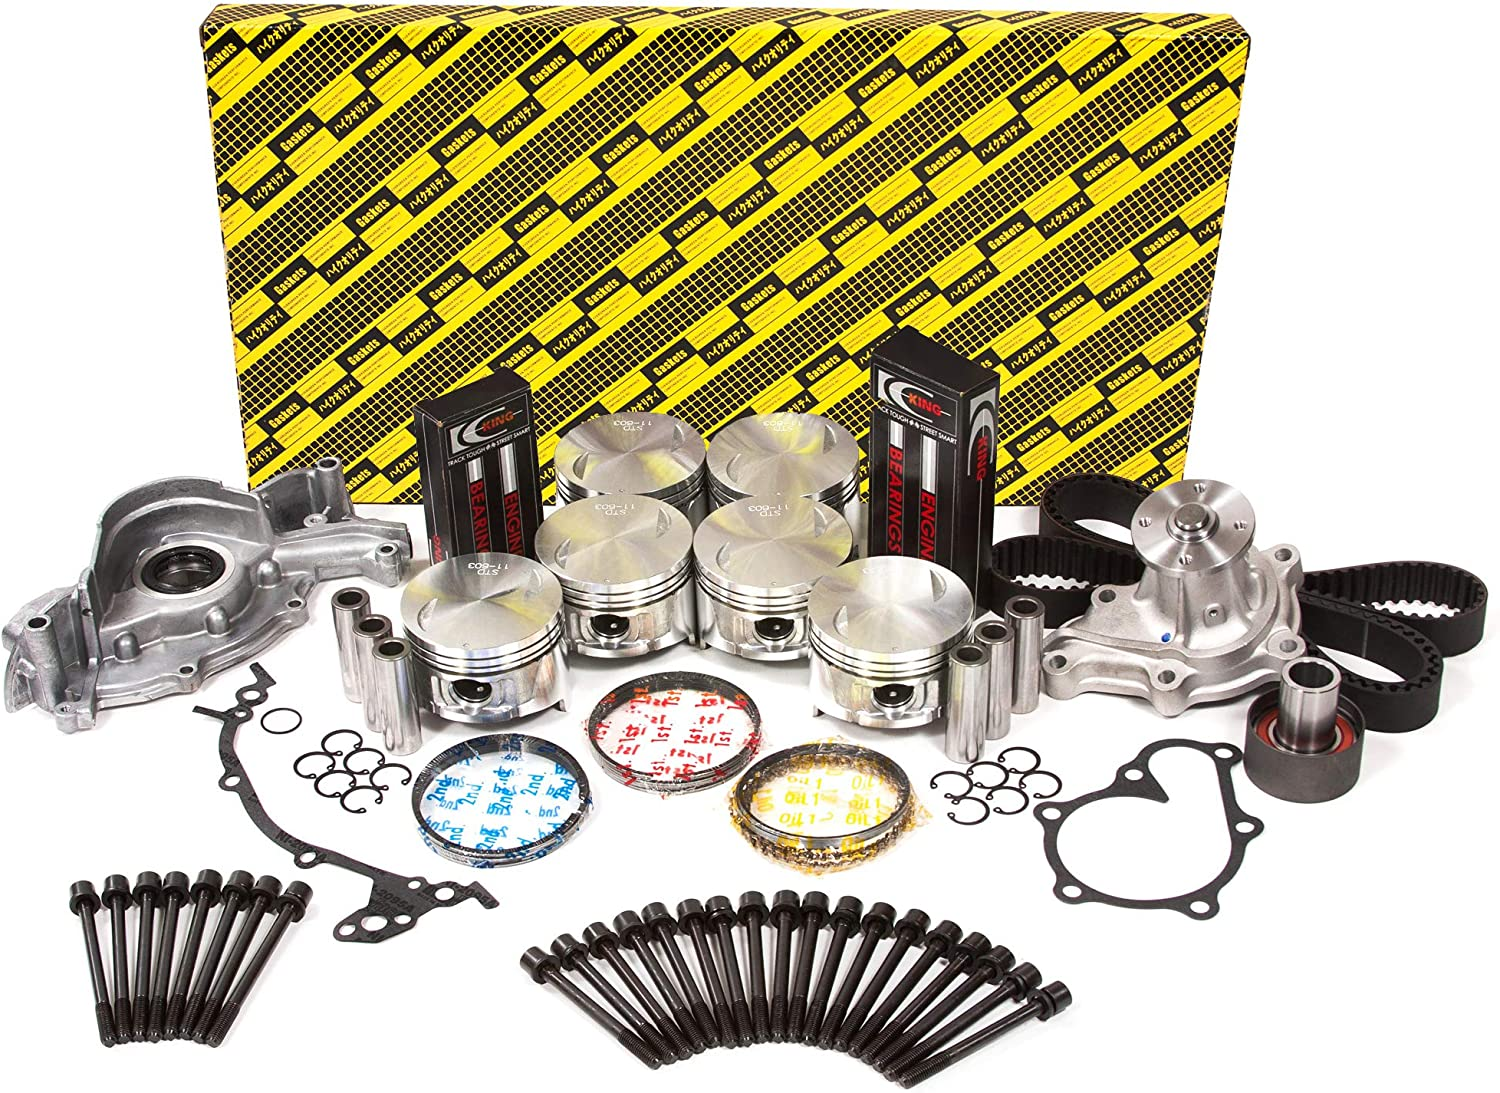 Evergreen OK3009AM//2//1//1 Fits 84-86 Nissan 300ZX non-Turno 2.4L SOHC KA24E 12V Master Overhaul Engine Rebuild Kit